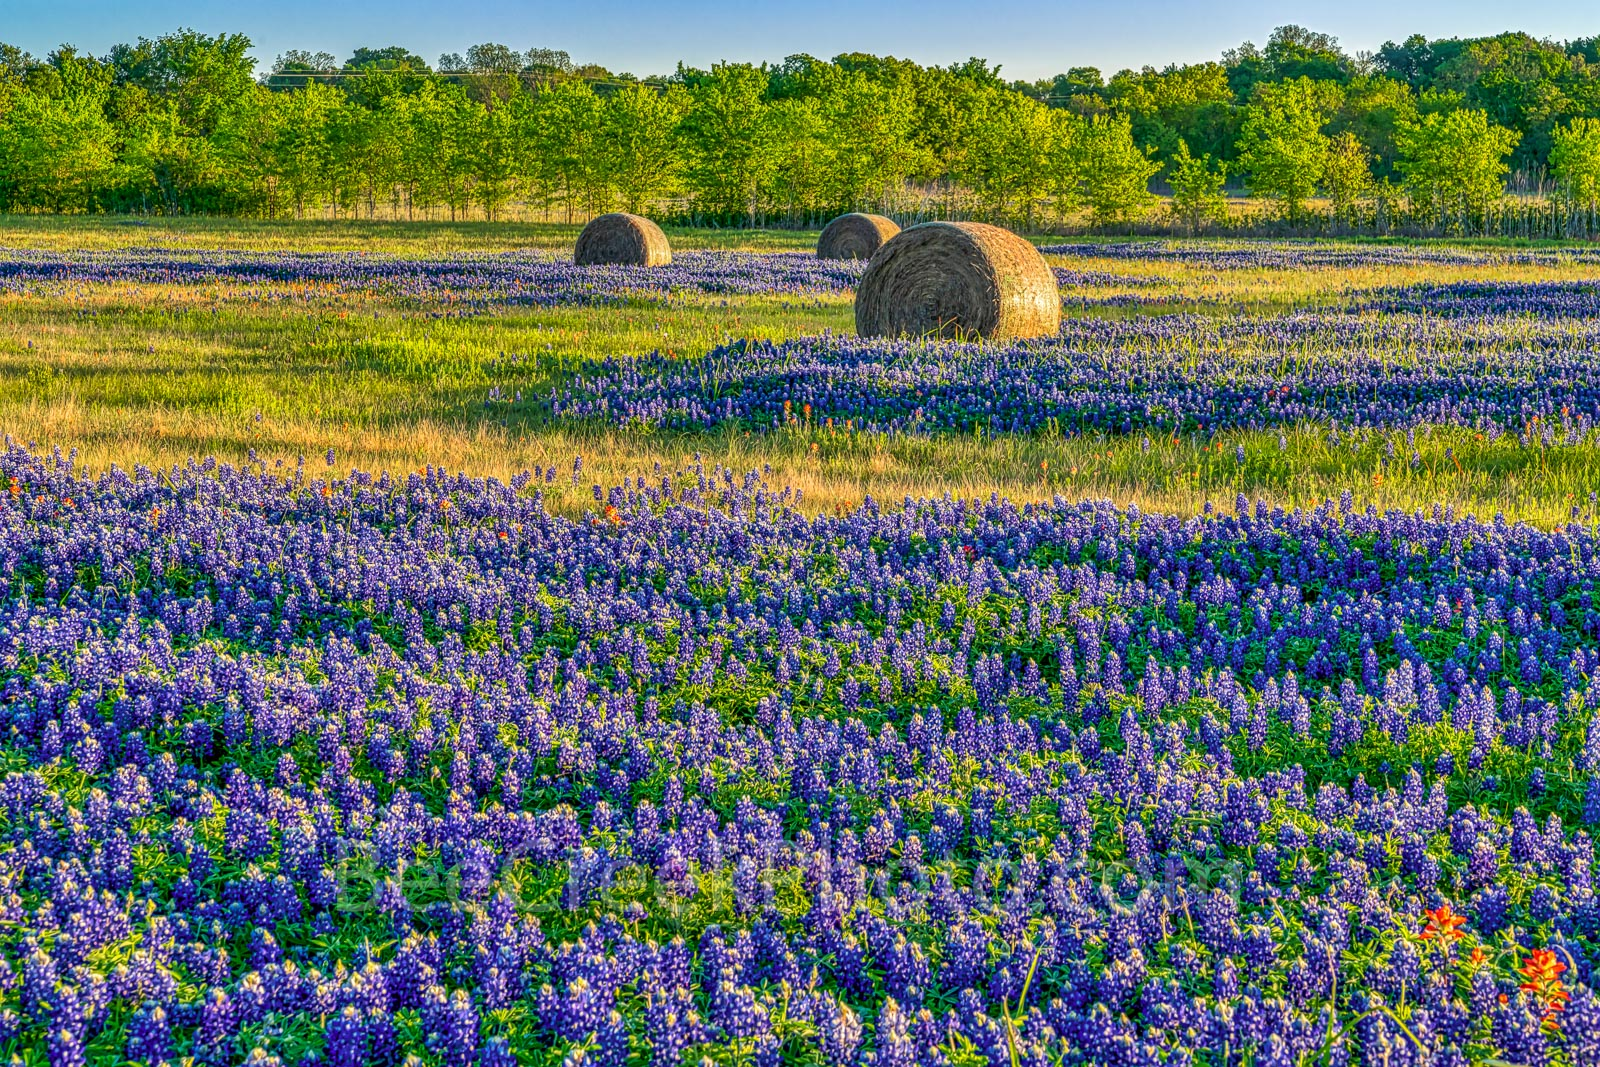 Texas bluebonnets, hay bales, indian paintbrush, rural texas, field of haybales, wildflowers, landscape, , photo